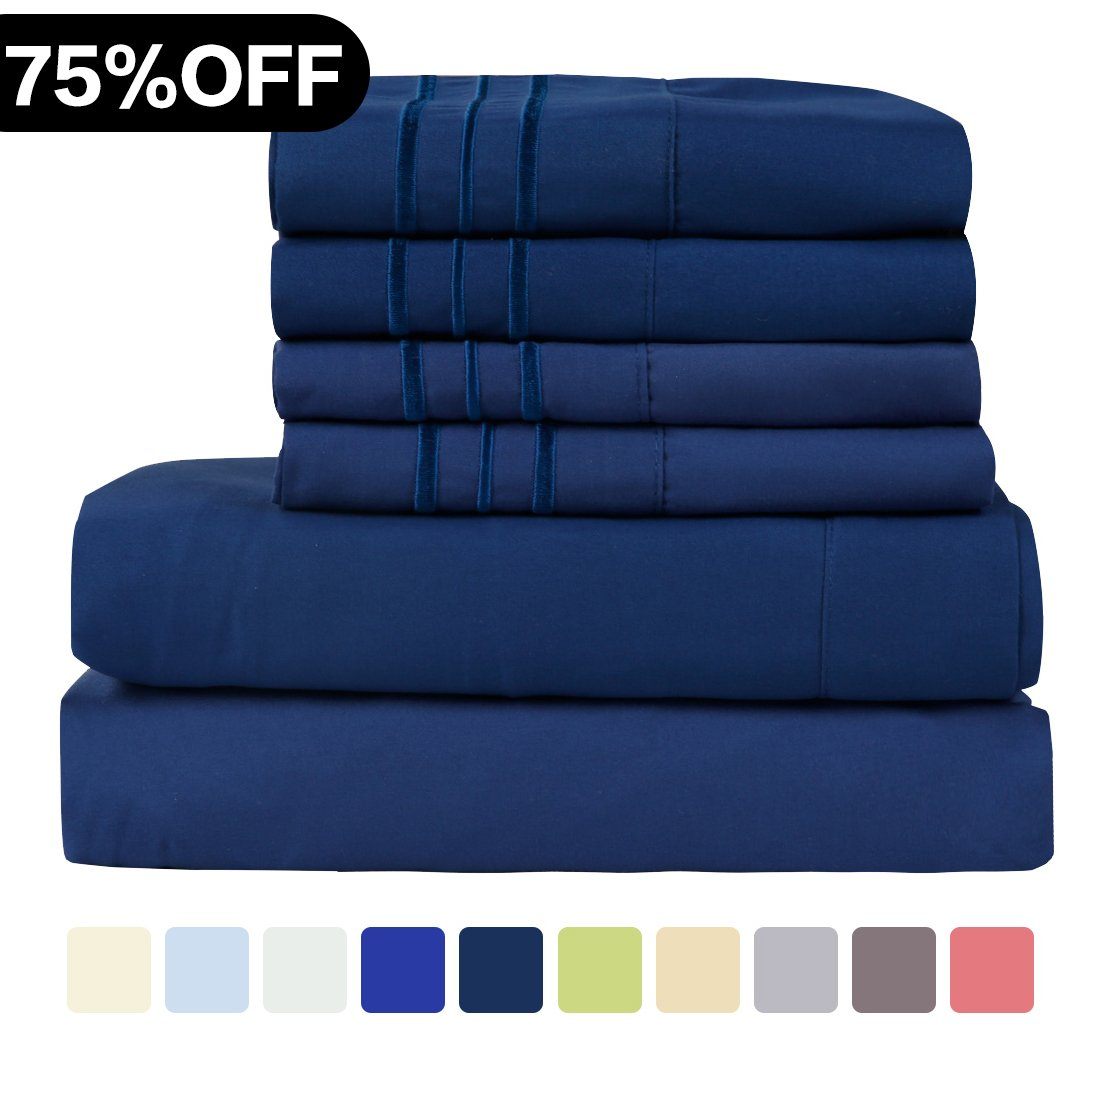 WARM HARBOR Microfiber Sheet Set Super Soft 1800 Thread Count Deep Pocket Bed Sheets Wrinkle, Fade, Stain Resistant Hypoallergenic -4 Piece(Navy, Twin XL)